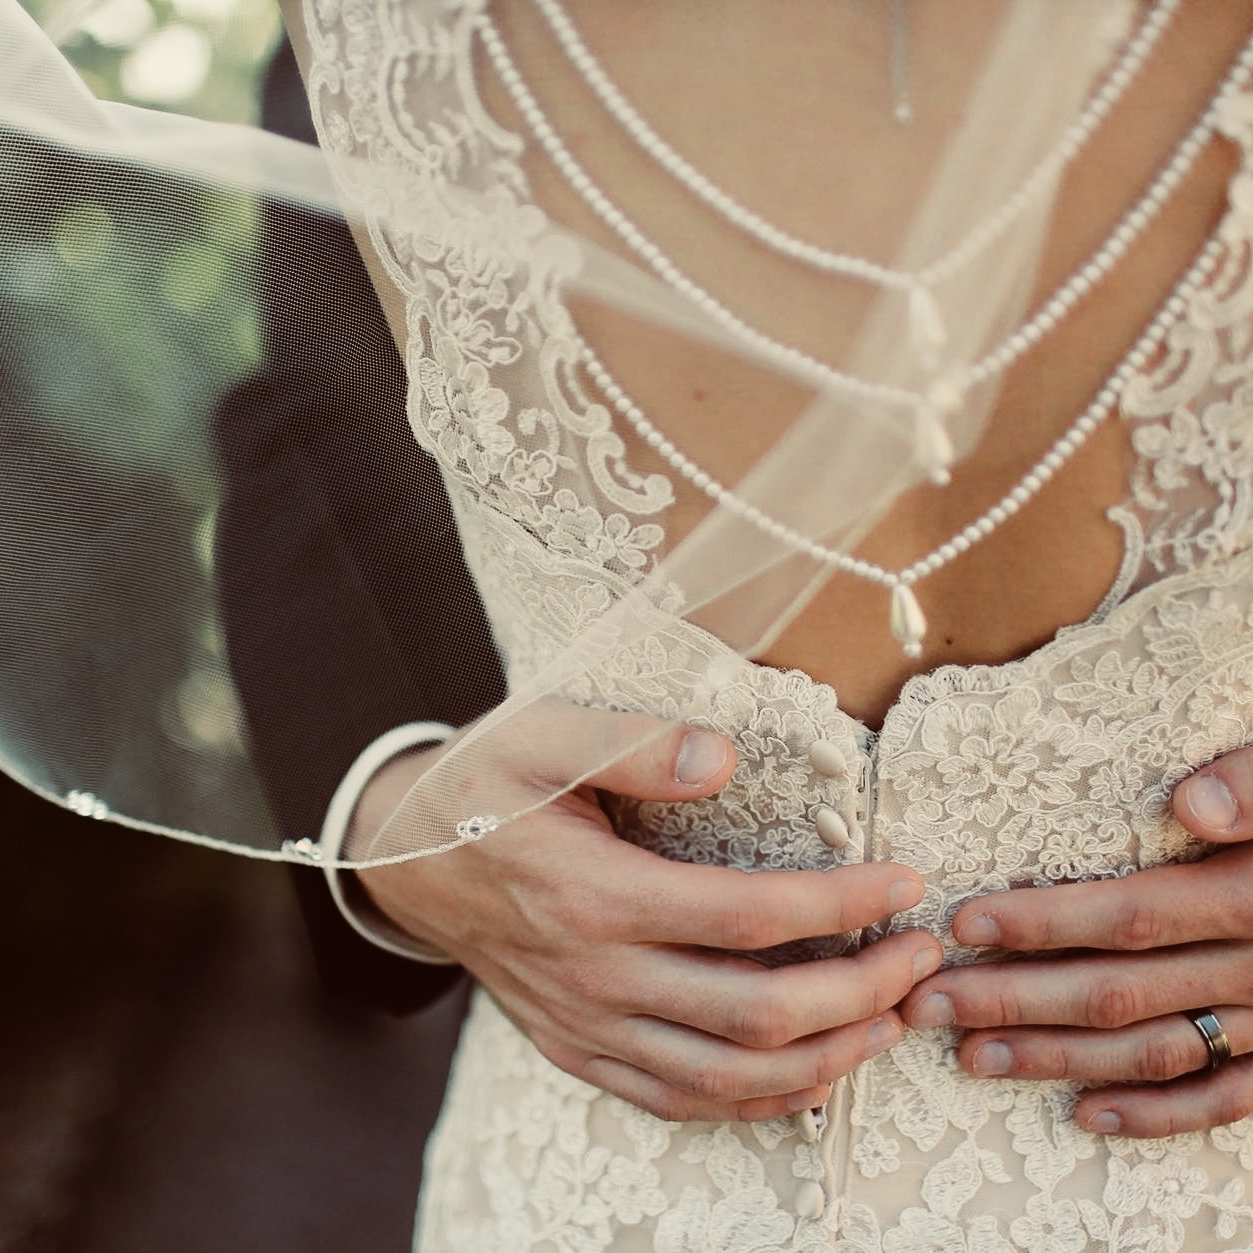 - bridal suitethere is so much that can be done prior to the big day. Pure lux in edina, takes pride in offering treatments for the whole body. Sculpsure body sculpting and infrared detox will get you ready for that gown. in addition, our personal trainers at tres sports can customize a plan to achieve your goals